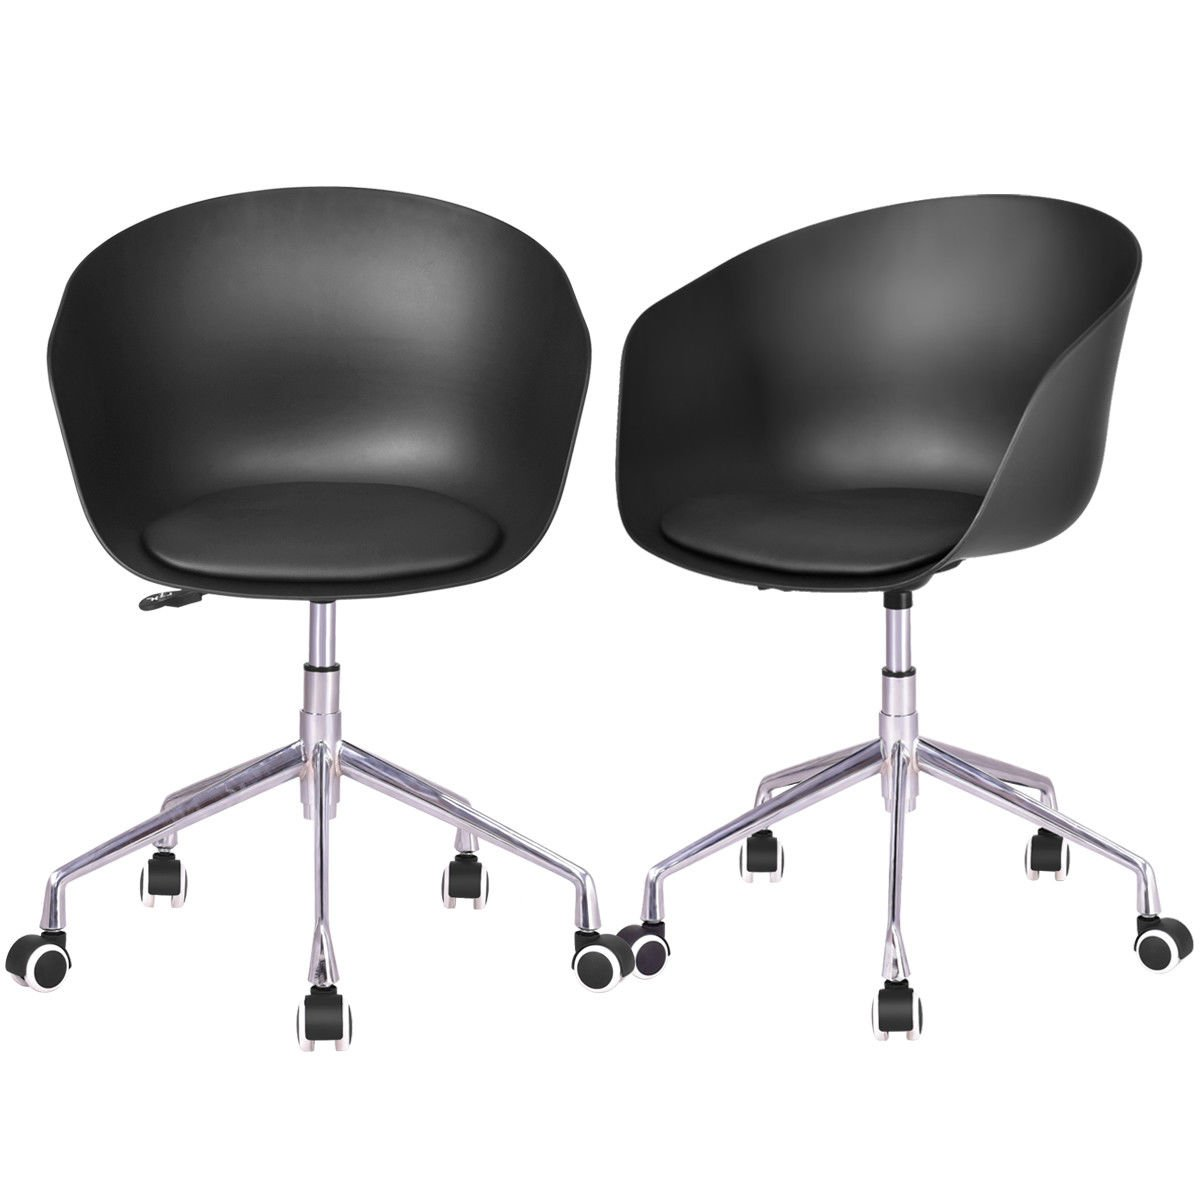 KCHEX>>Set of 2 Desk Chair PP Swivel Height Adjustable Rolling Home Office TasThis is Our Brand New Adjustable PP Chair with PU and Sponge seat That is Sold in one Set